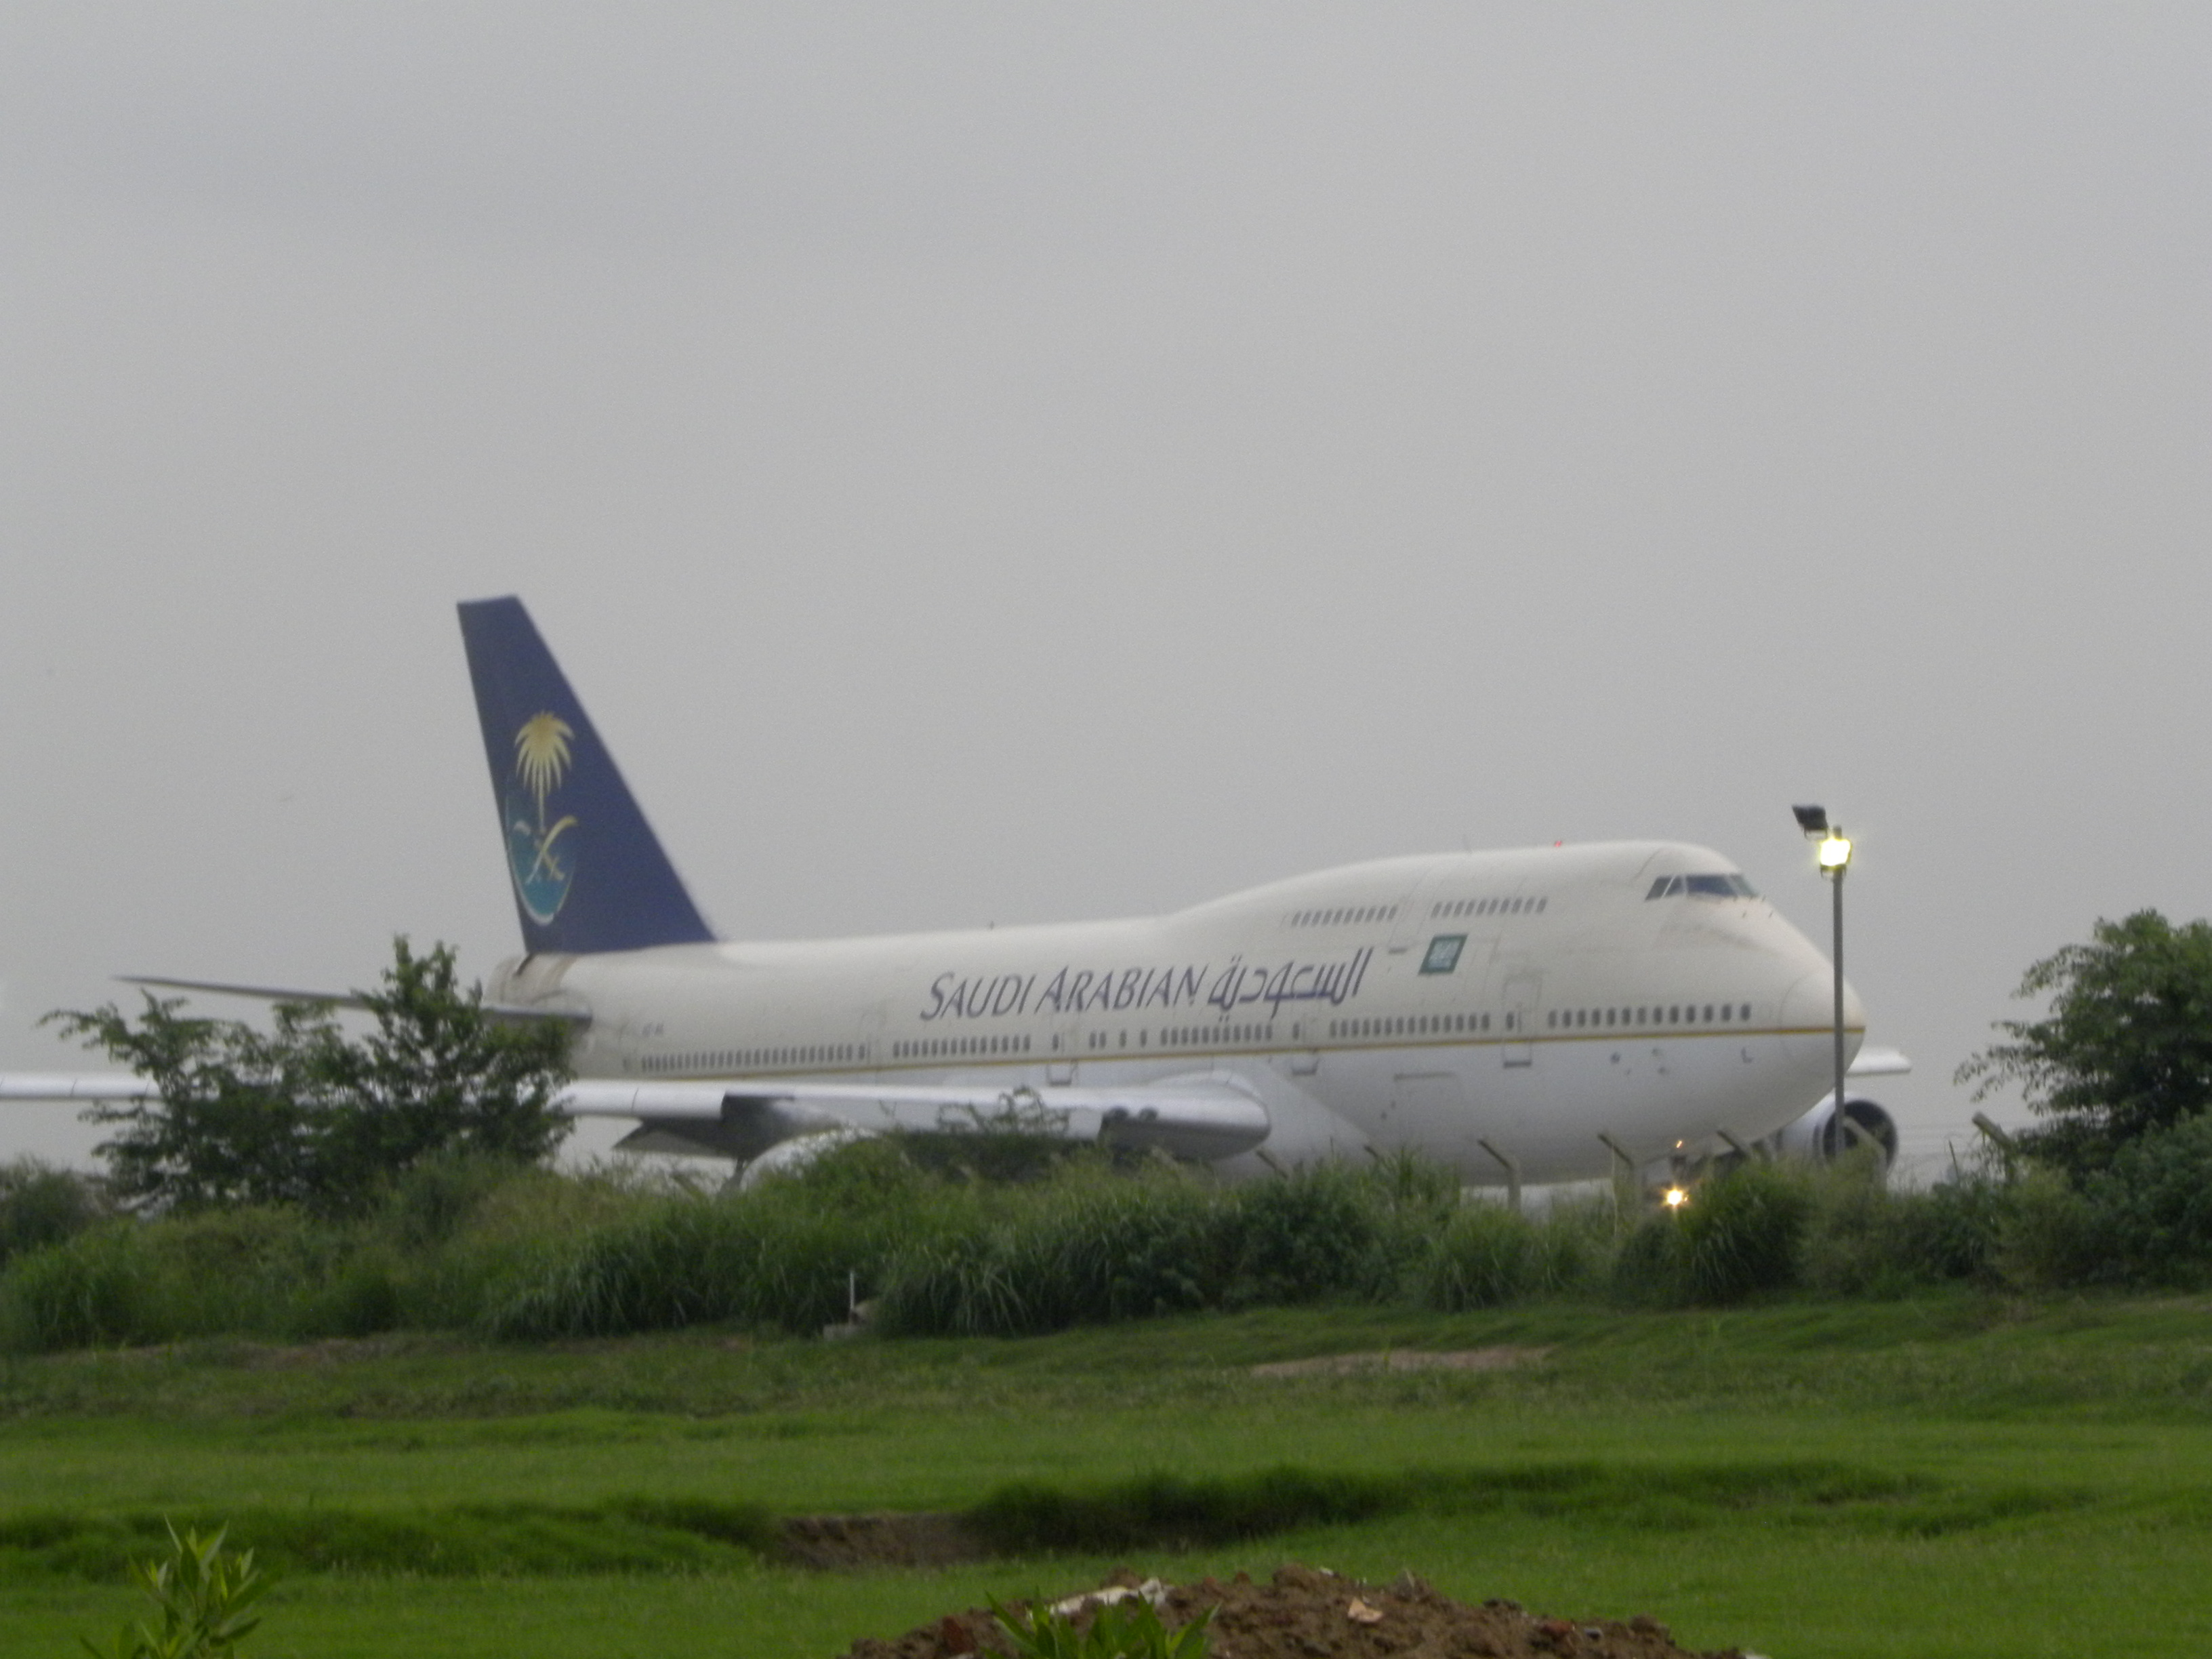 Download this Description Saudi Arabian Airlines picture